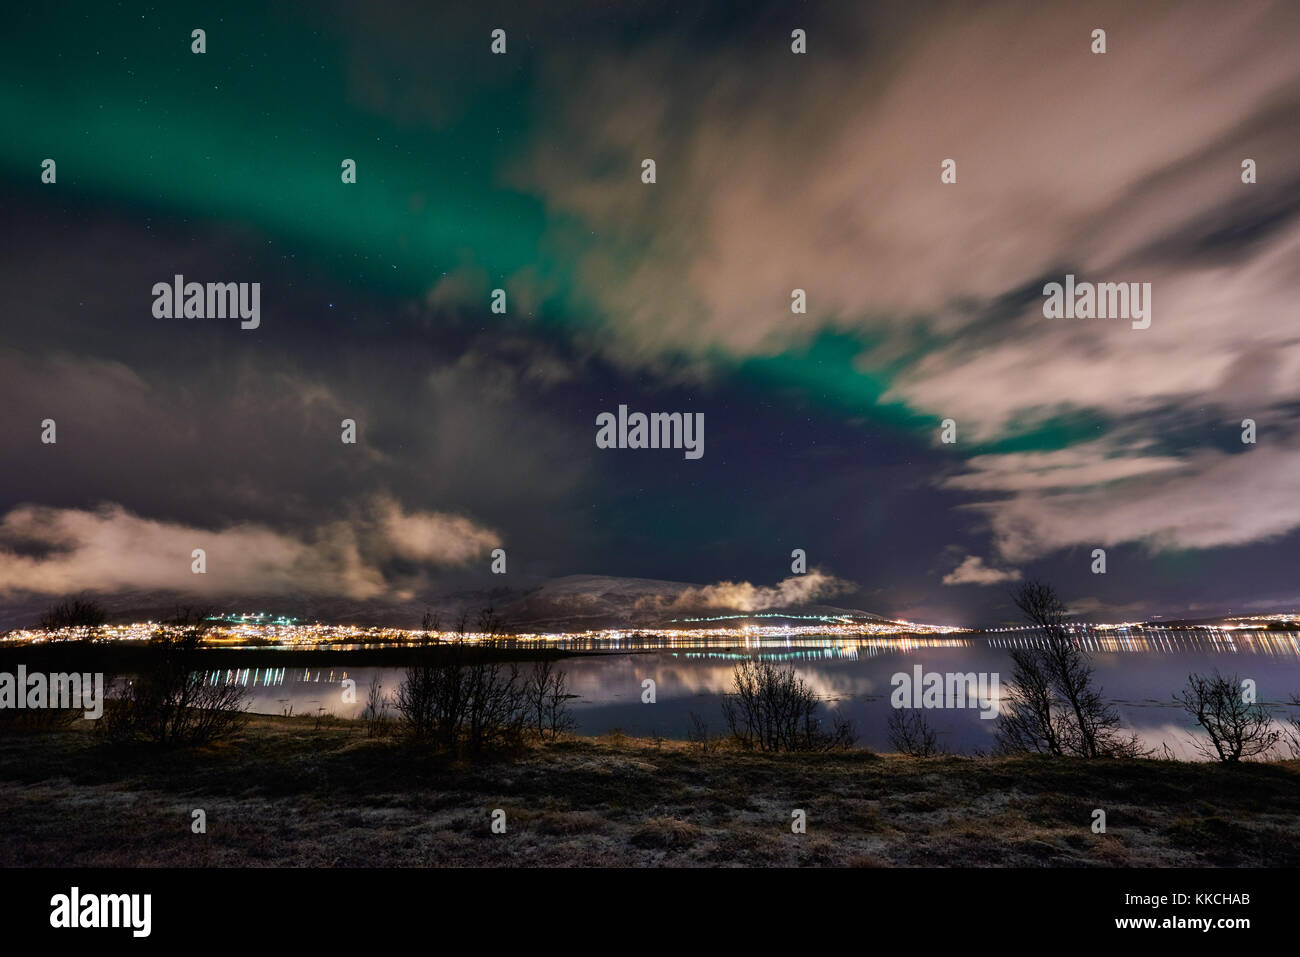 Aurora Borealis or northern lights over winter landscape of Tromso, Troms, Norway, Europe - Stock Image